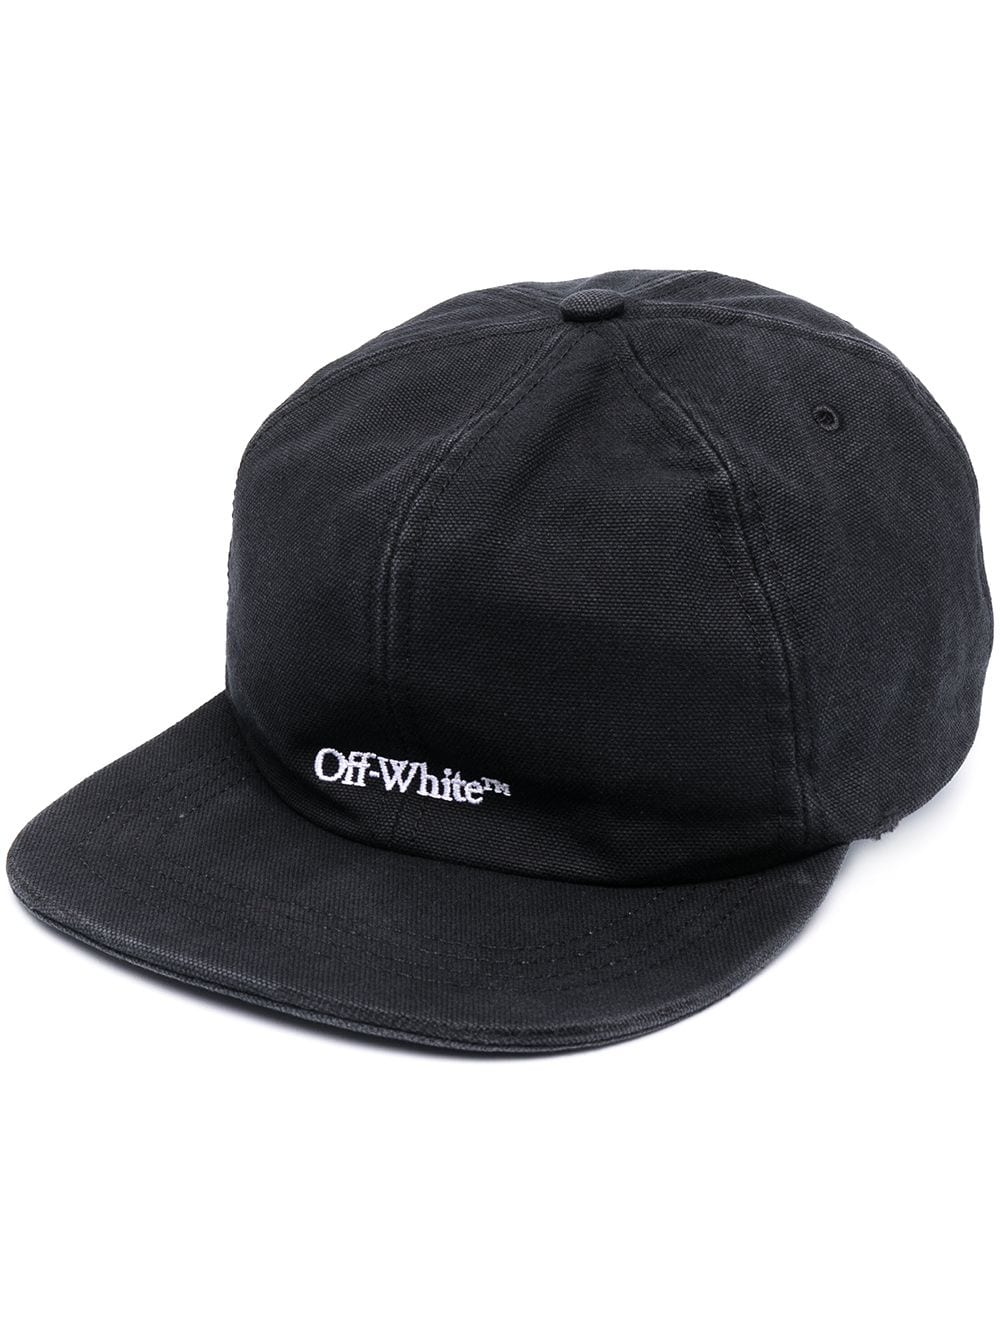 OFF WHITE MEN BOOKISH OW BASEBALL CAP